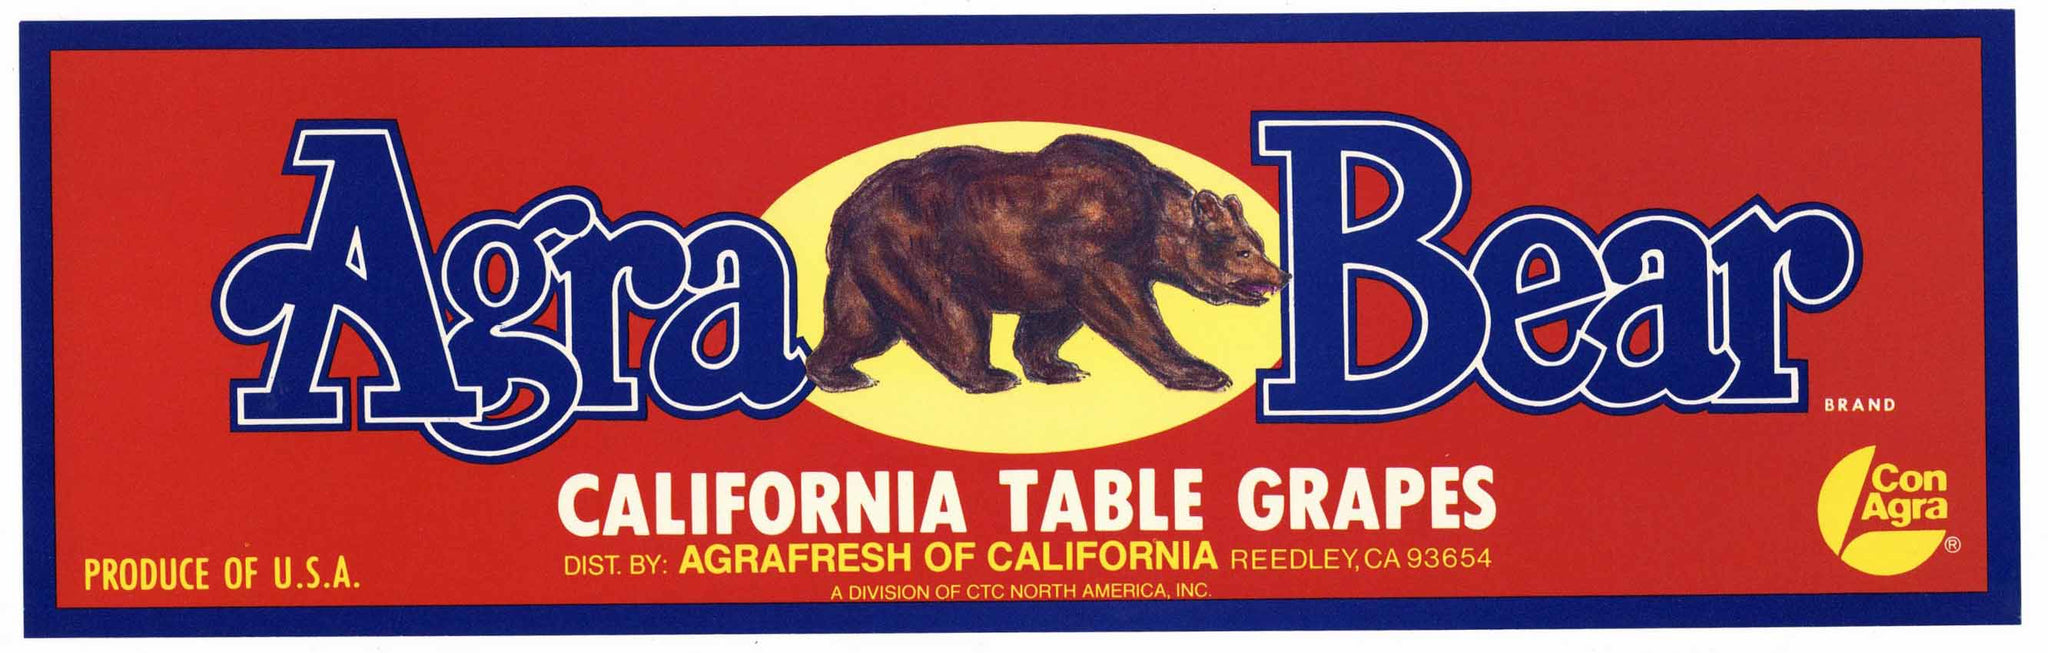 Agra Bear Brand Vintage Reedley Grape Crate Label